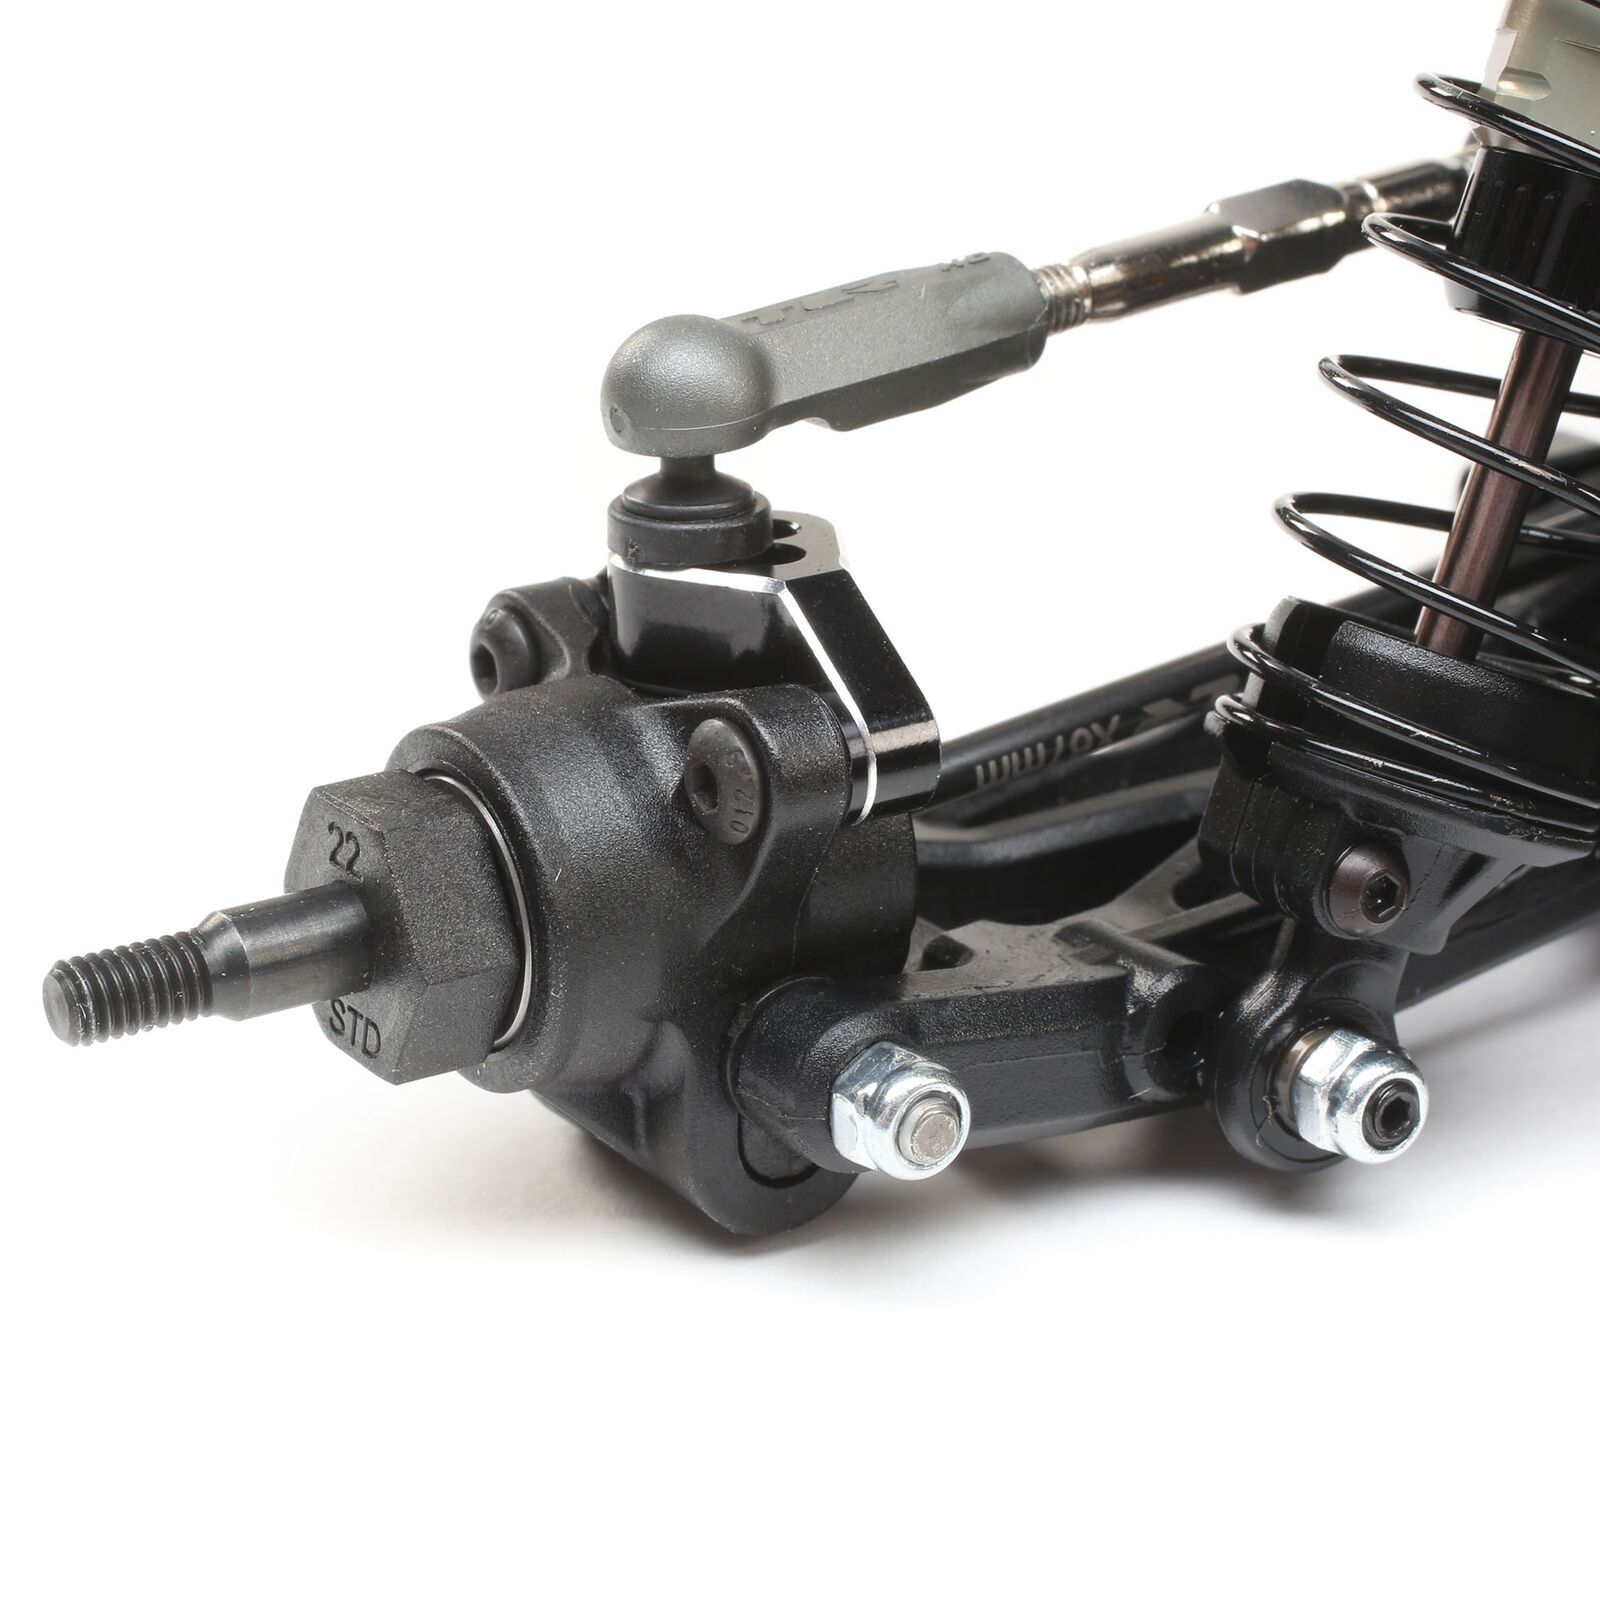 1/10 22 5.0 DC Race Roller 2WD Buggy, Dirt/Clay